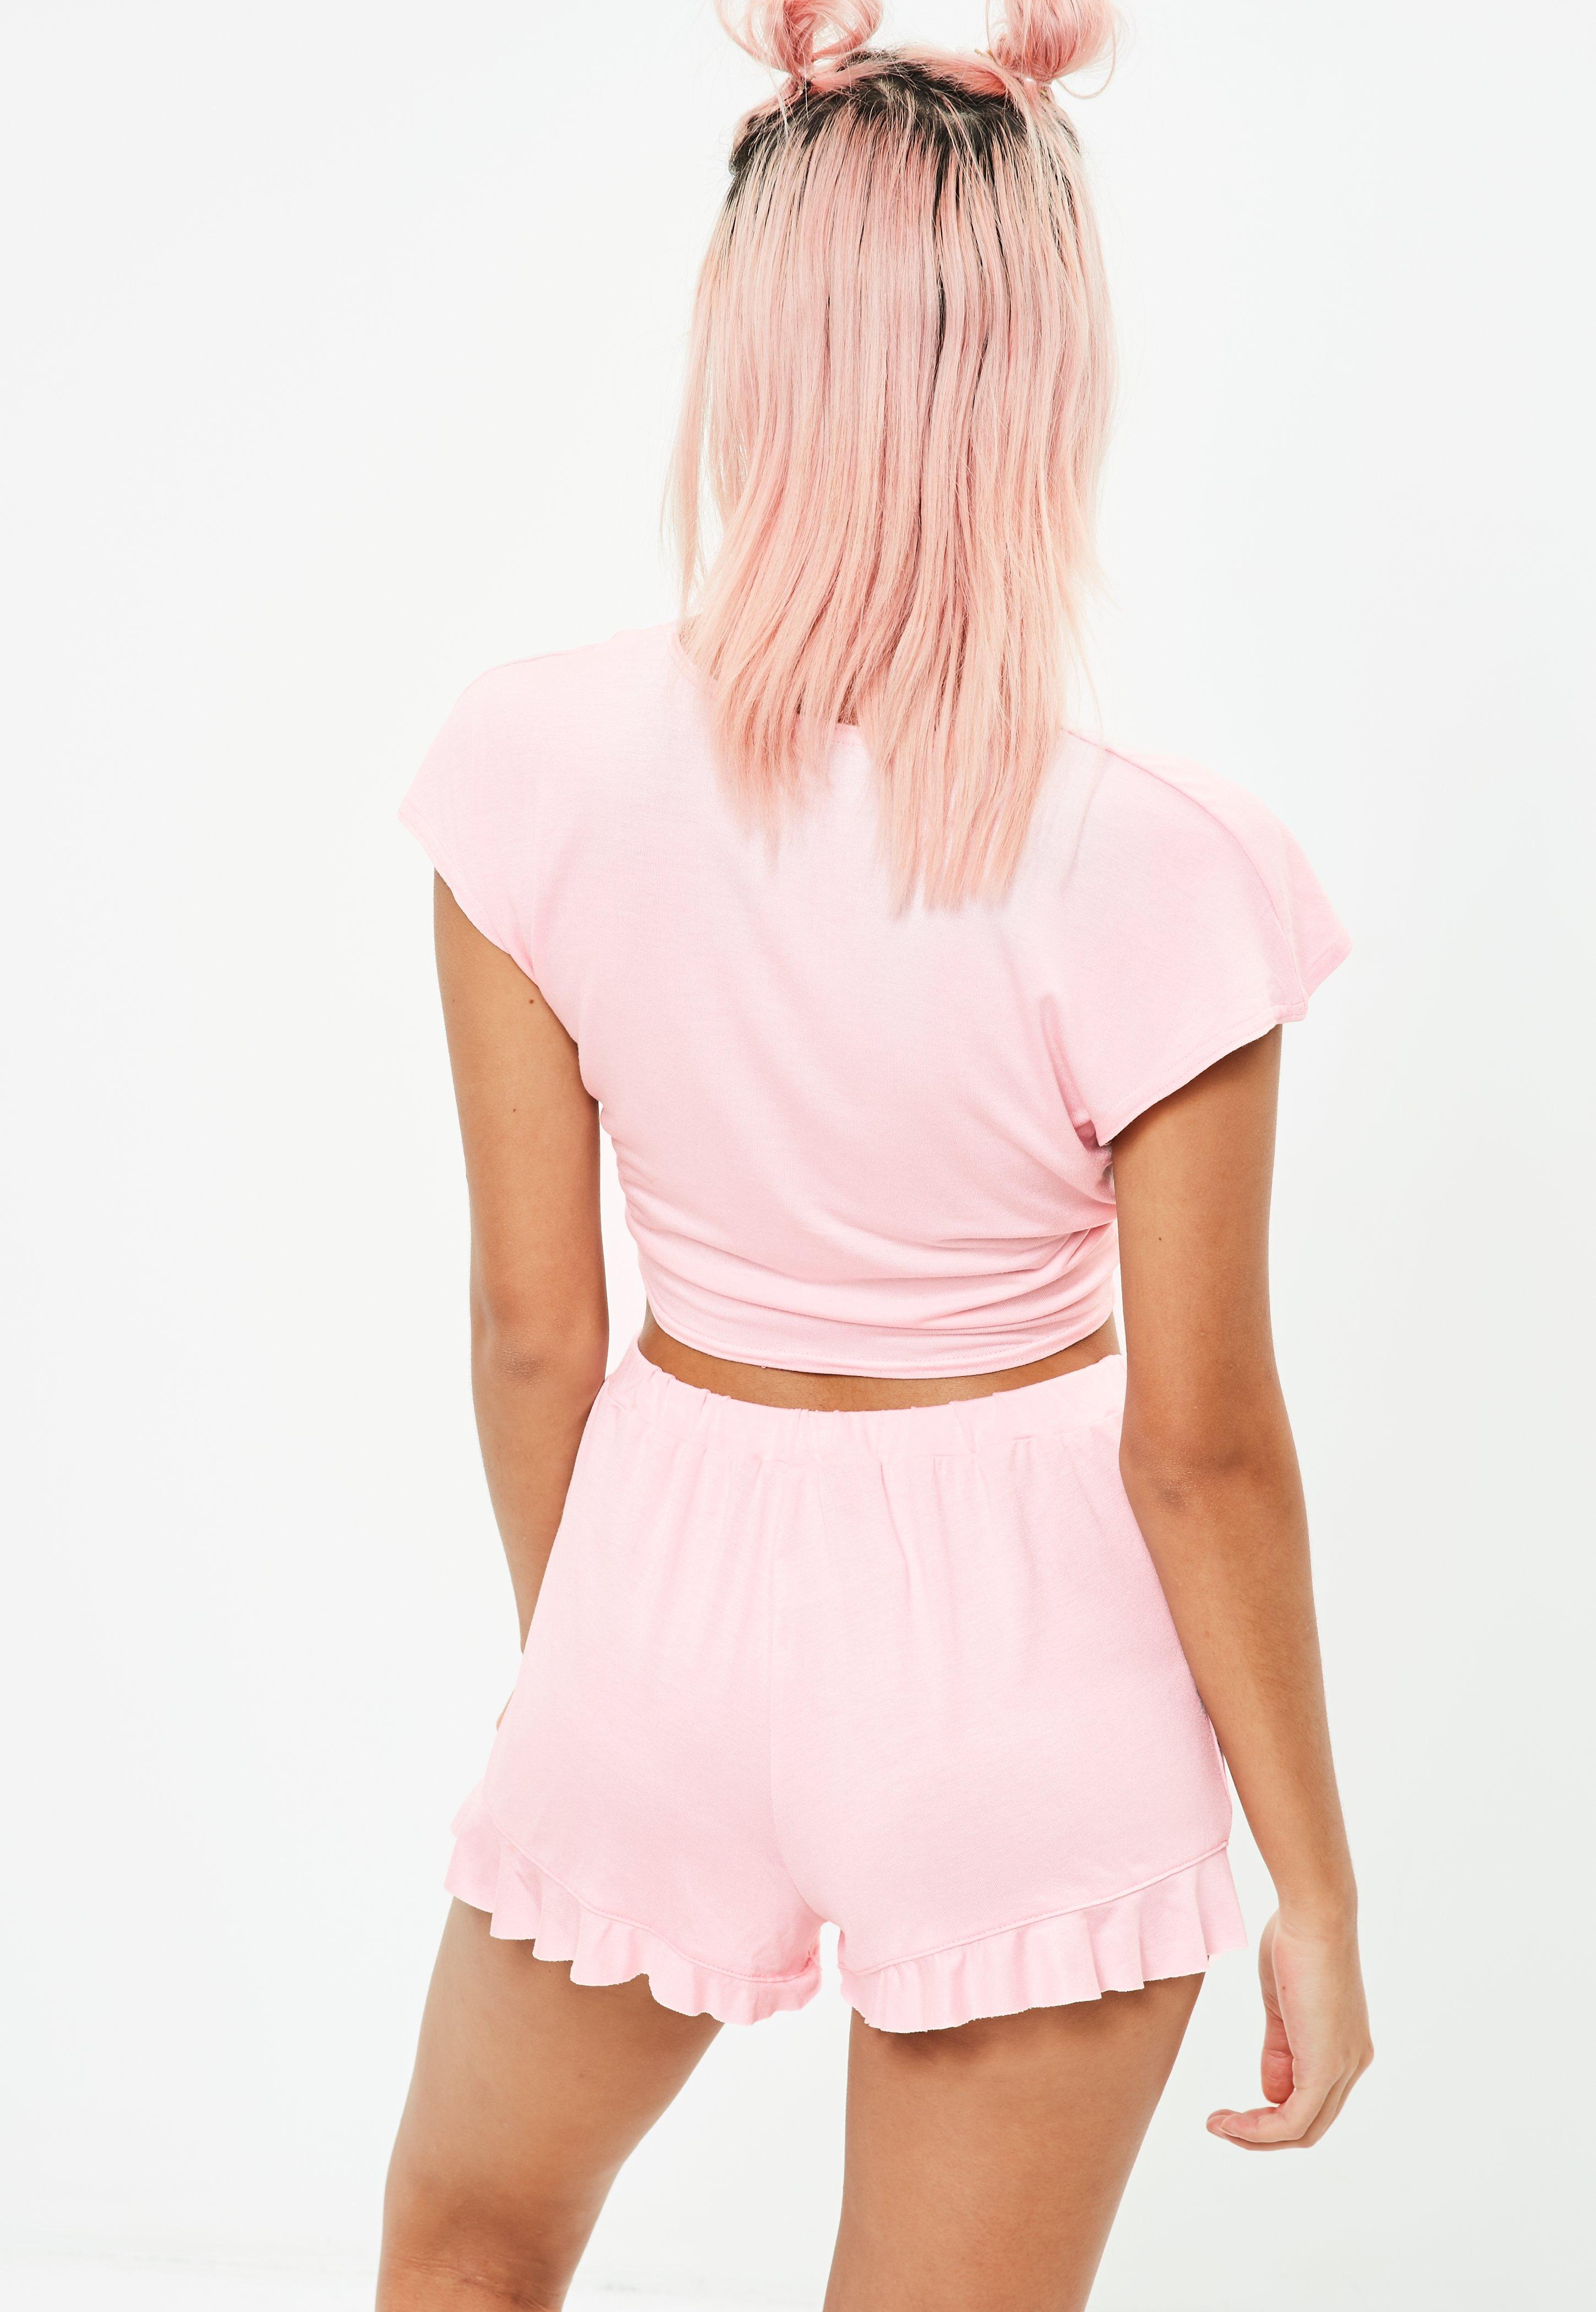 Manchester Missguided Crop Tie Lounge Set Release Dates Online Clearance Explore c7X4OE5r2